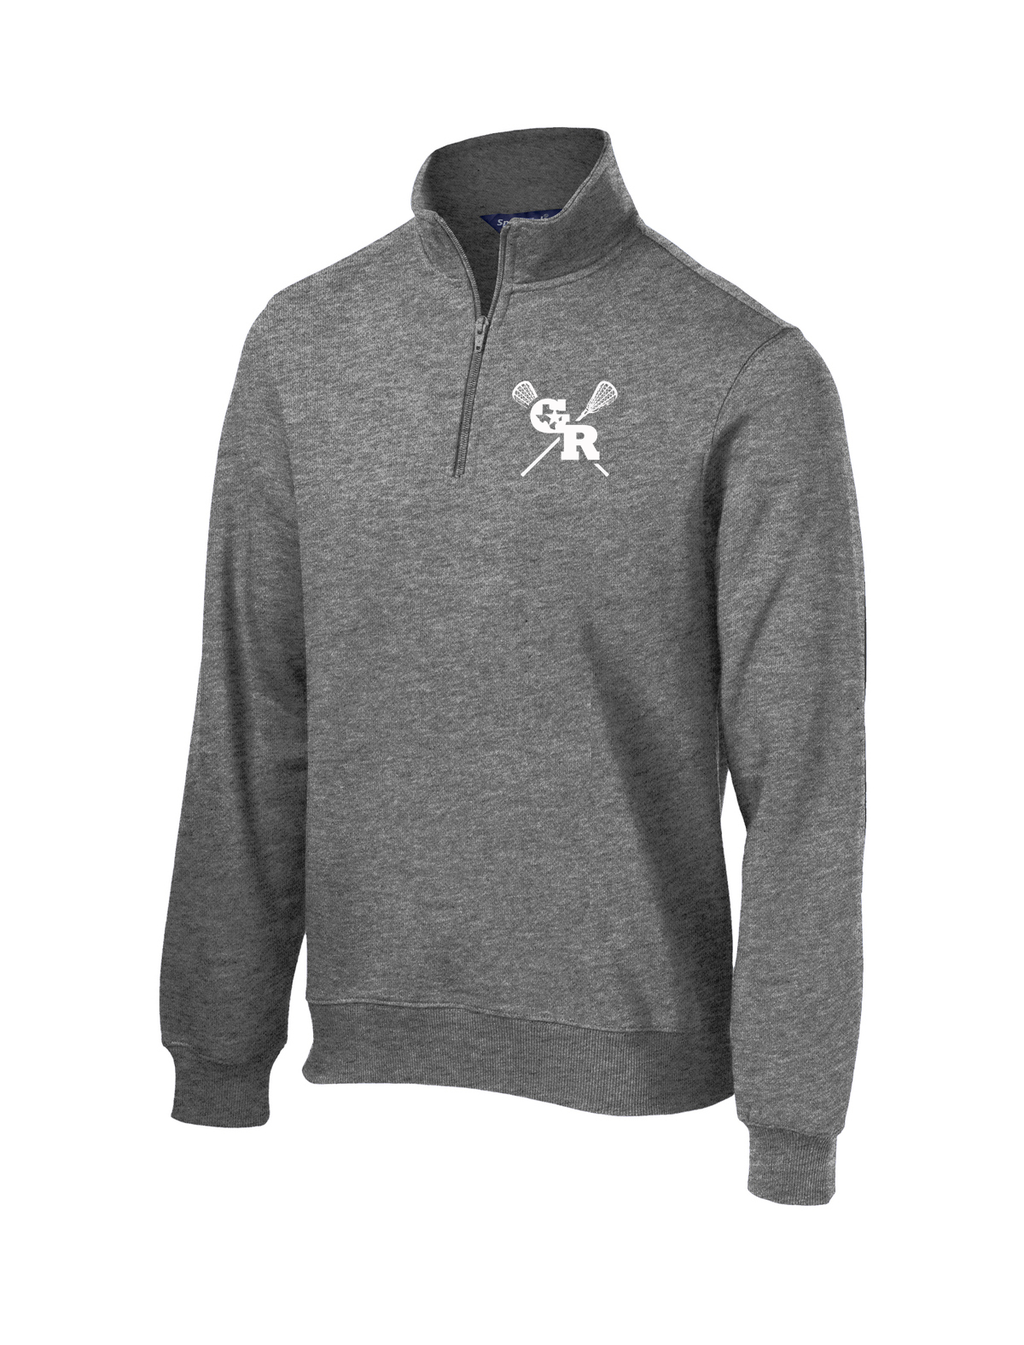 GR Longhorns Lacrosse 1/4 Zip Fleece